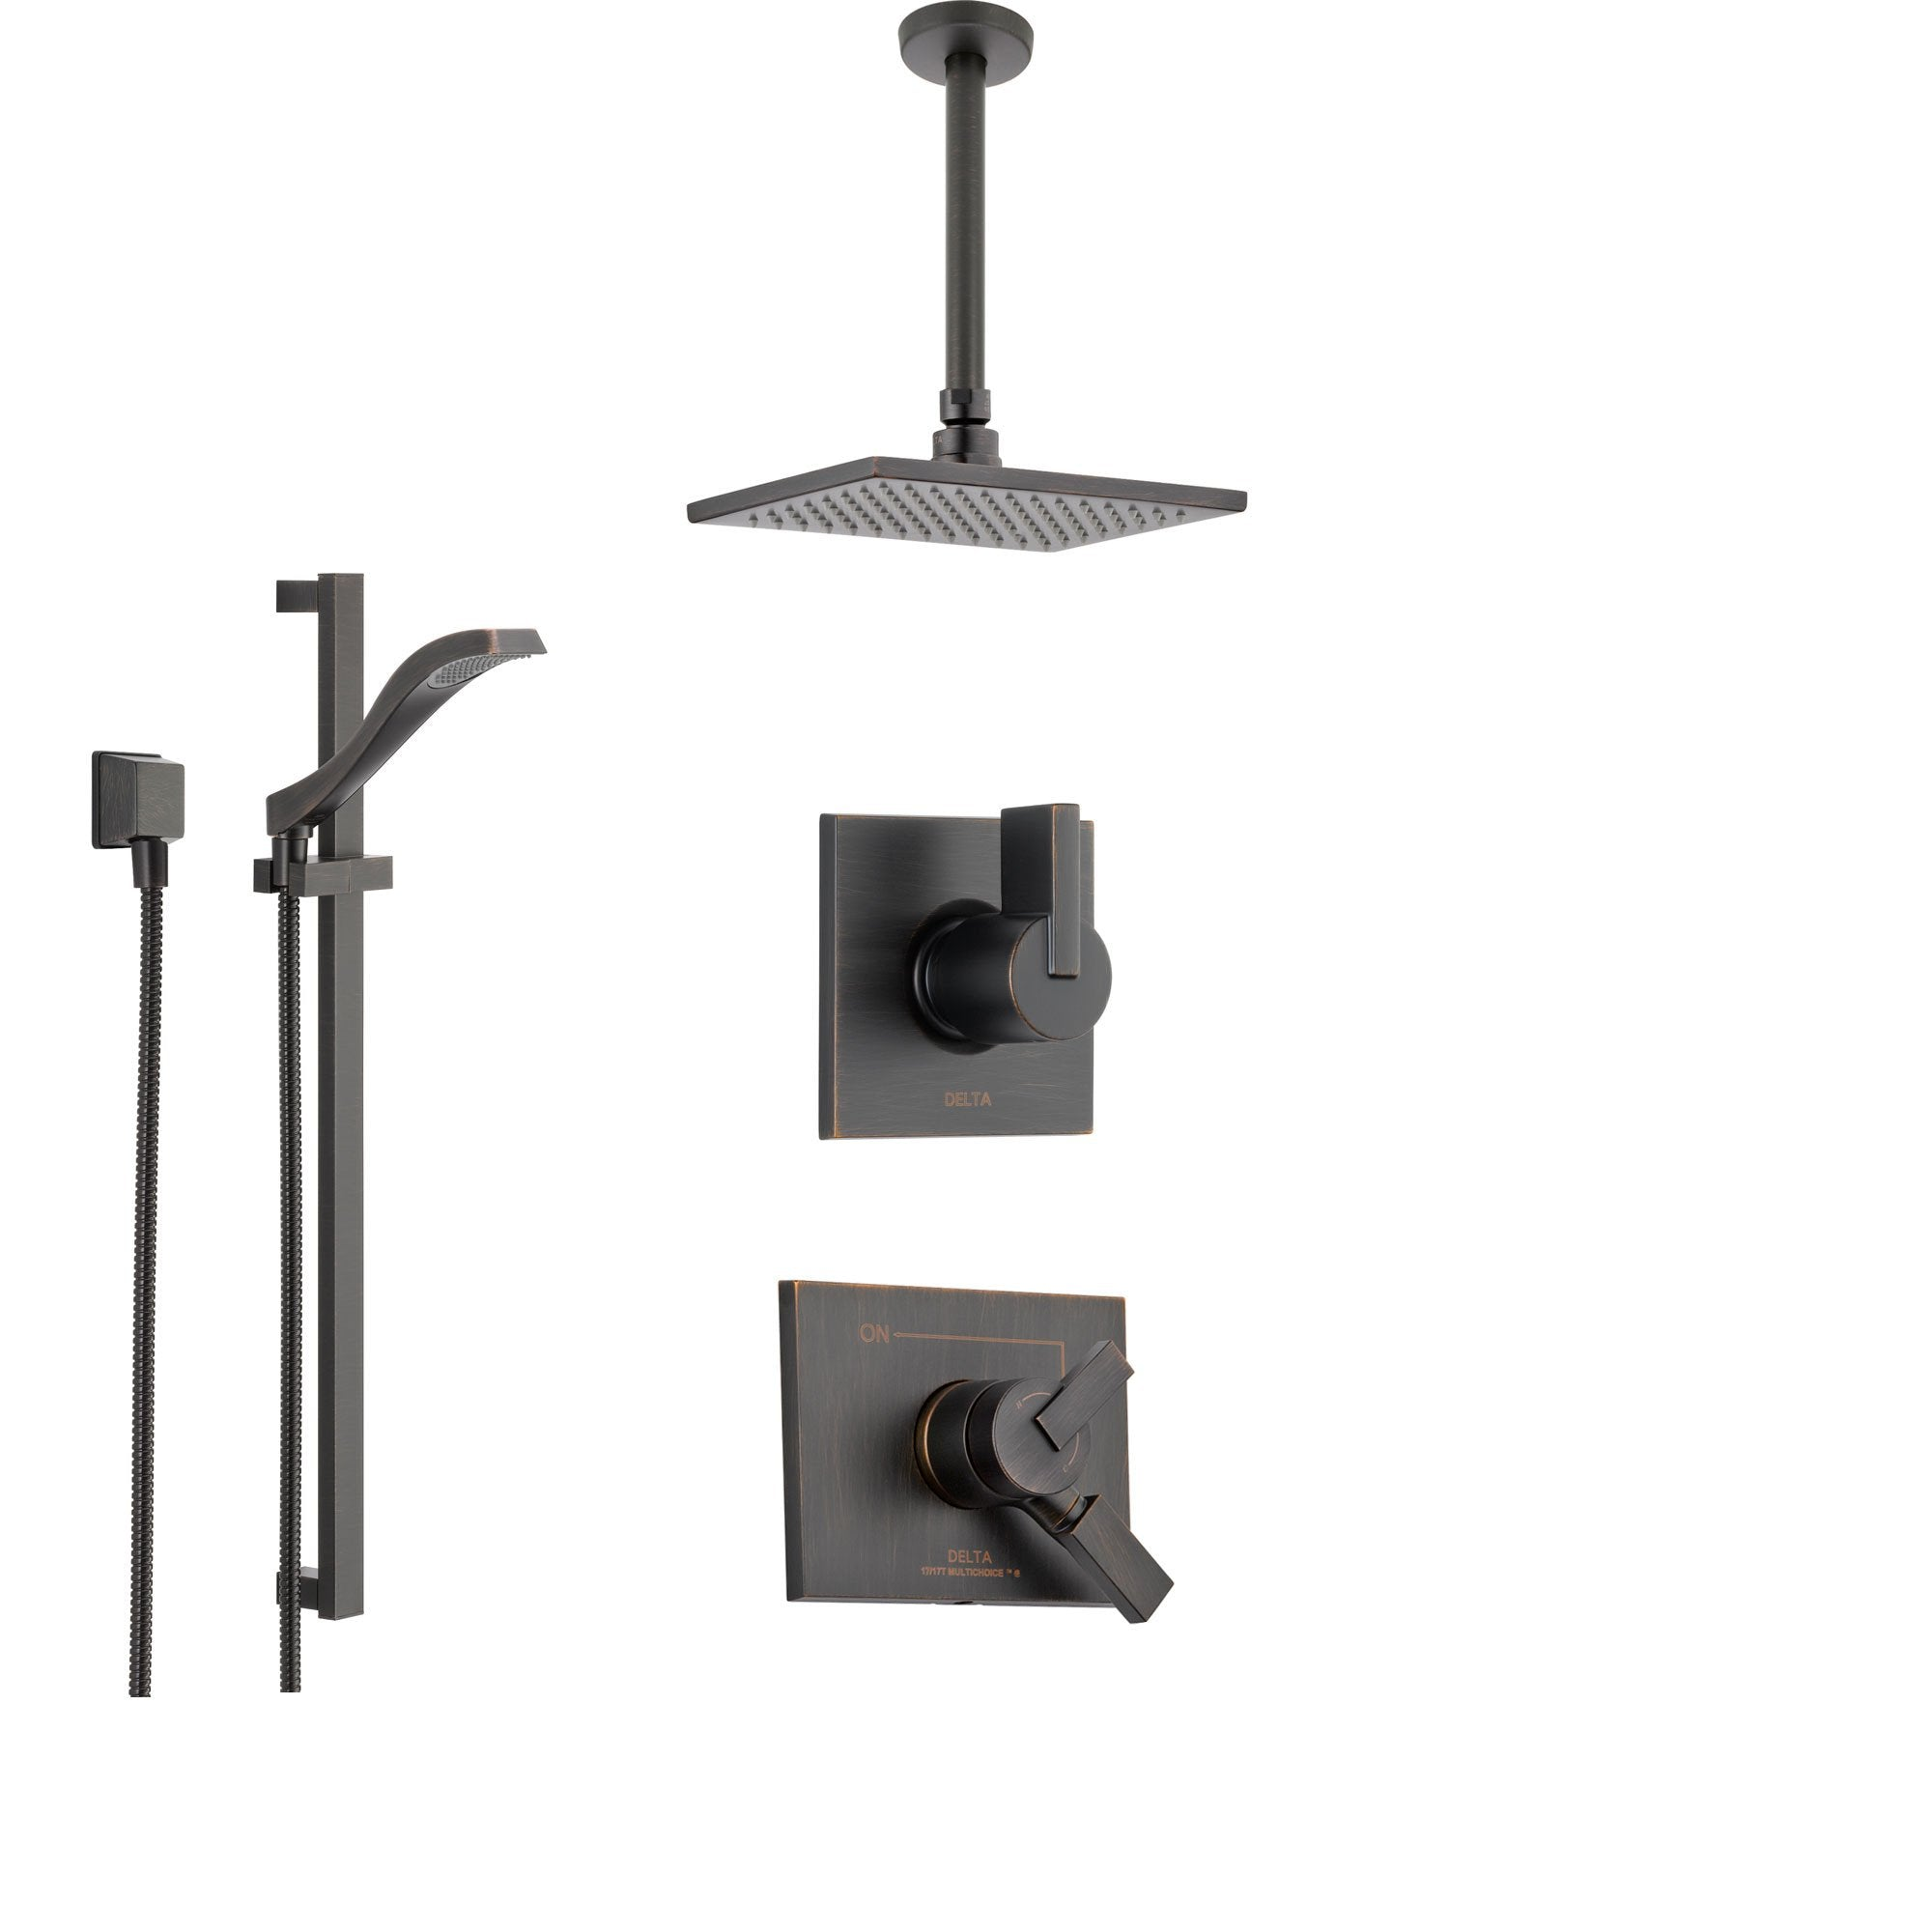 Delta Vero Venetian Bronze Shower System With Dual Control Shower Handle 3 Setting Diverter Modern Square Ceiling Mount Rain Showerhead And